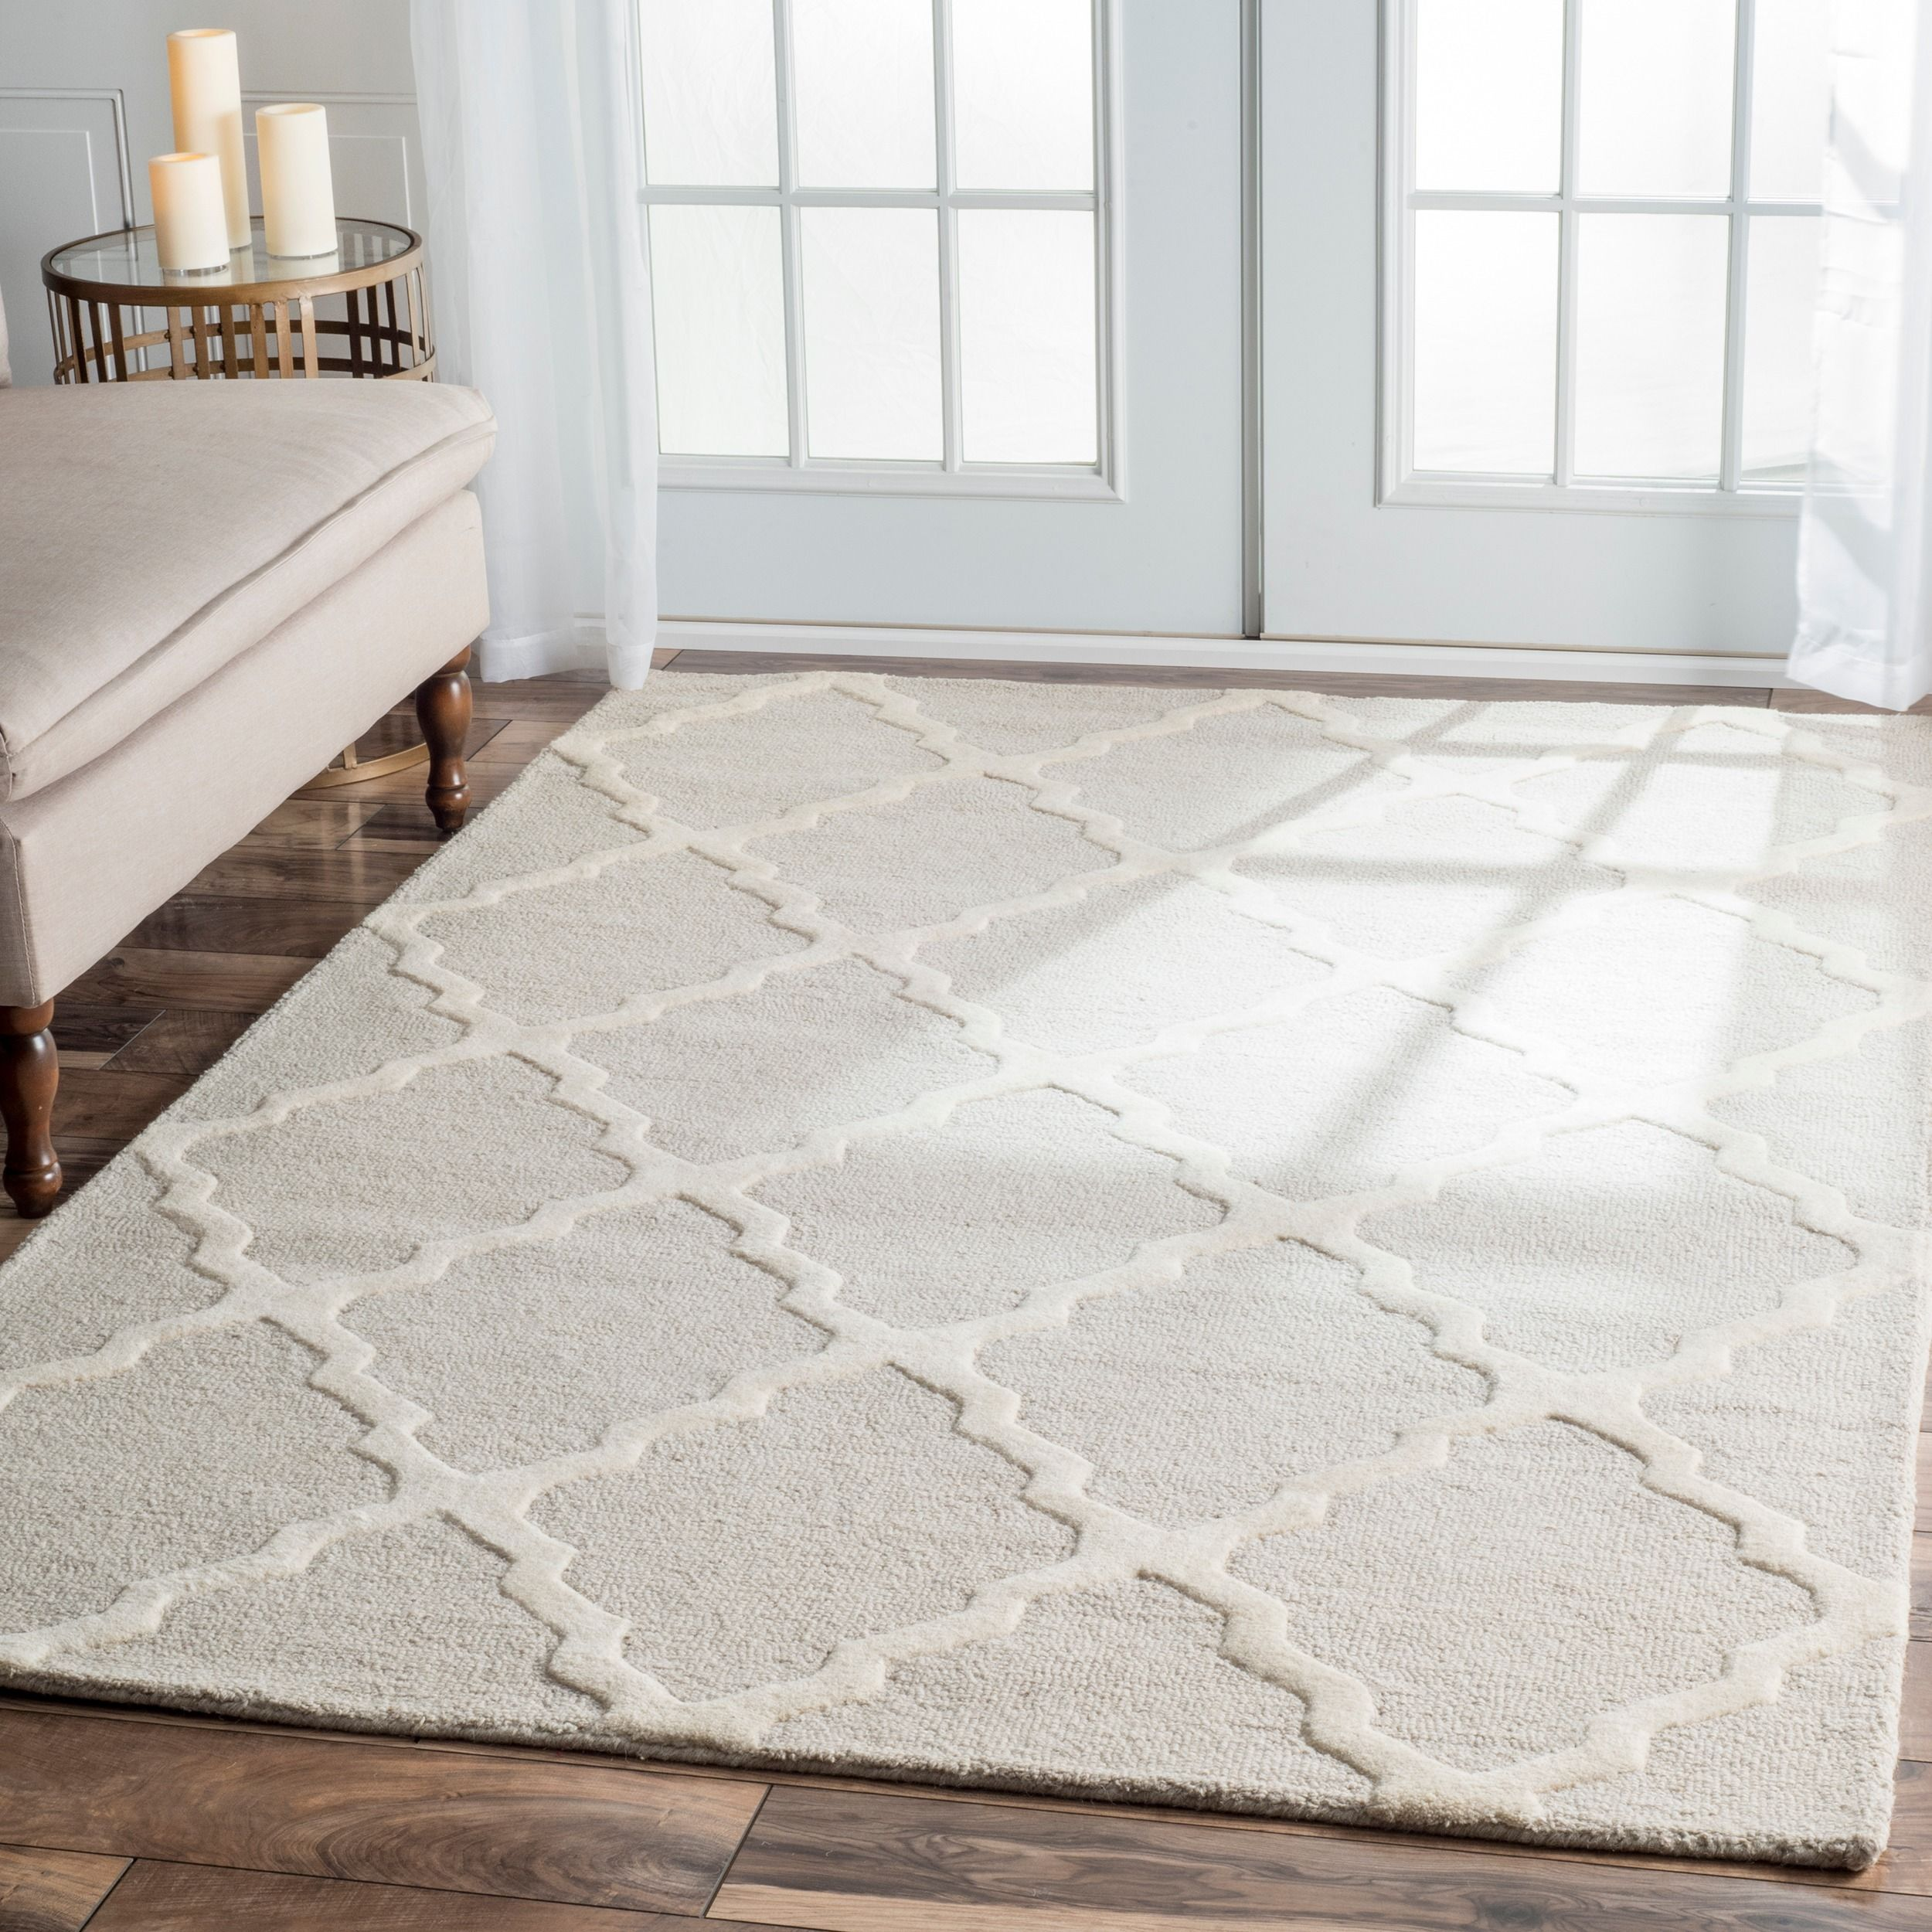 cable garden zealand wool braided product home white rug handmade new free nuloom today shipping overstock x